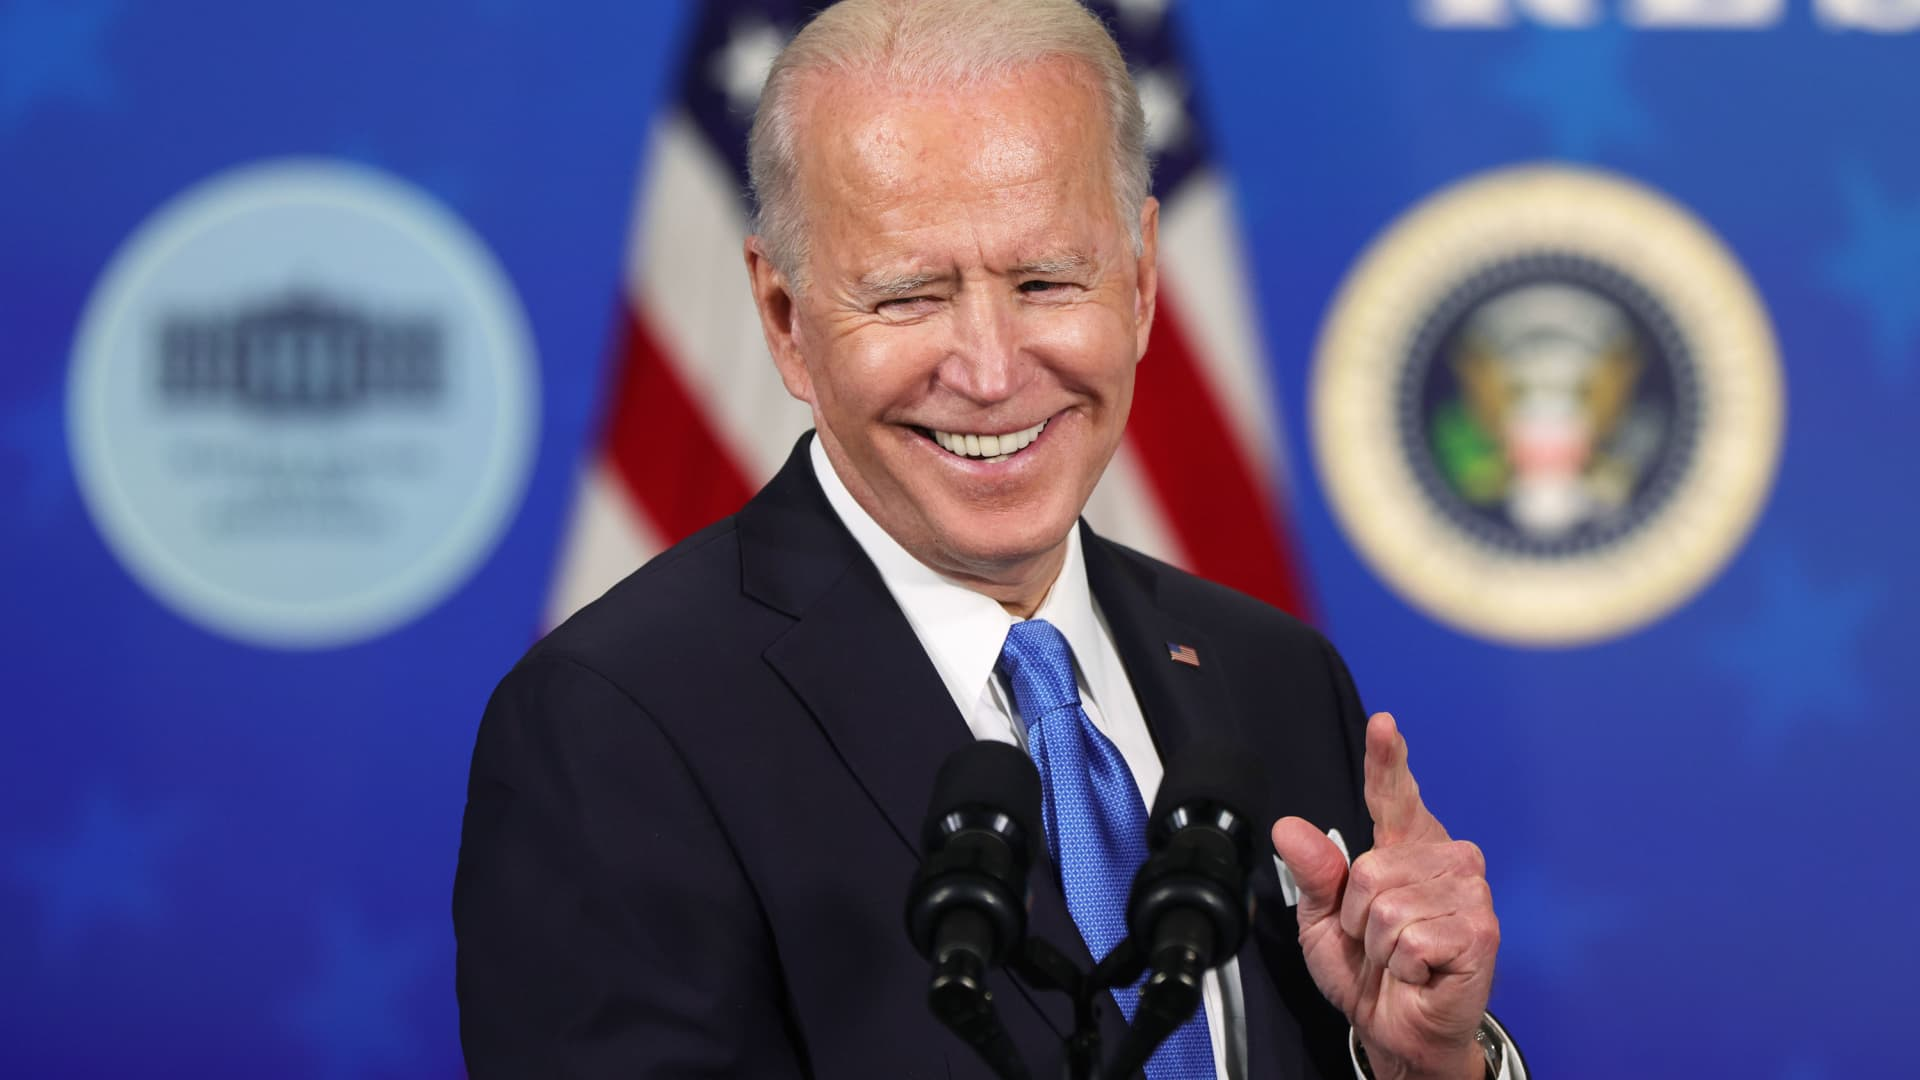 U.S. President Joe Biden speaks during an event with the CEOs of Johnson & Johnson and Merck at the South Court Auditorium of the Eisenhower Executive Office Building March 10, 2021 in Washington, DC.